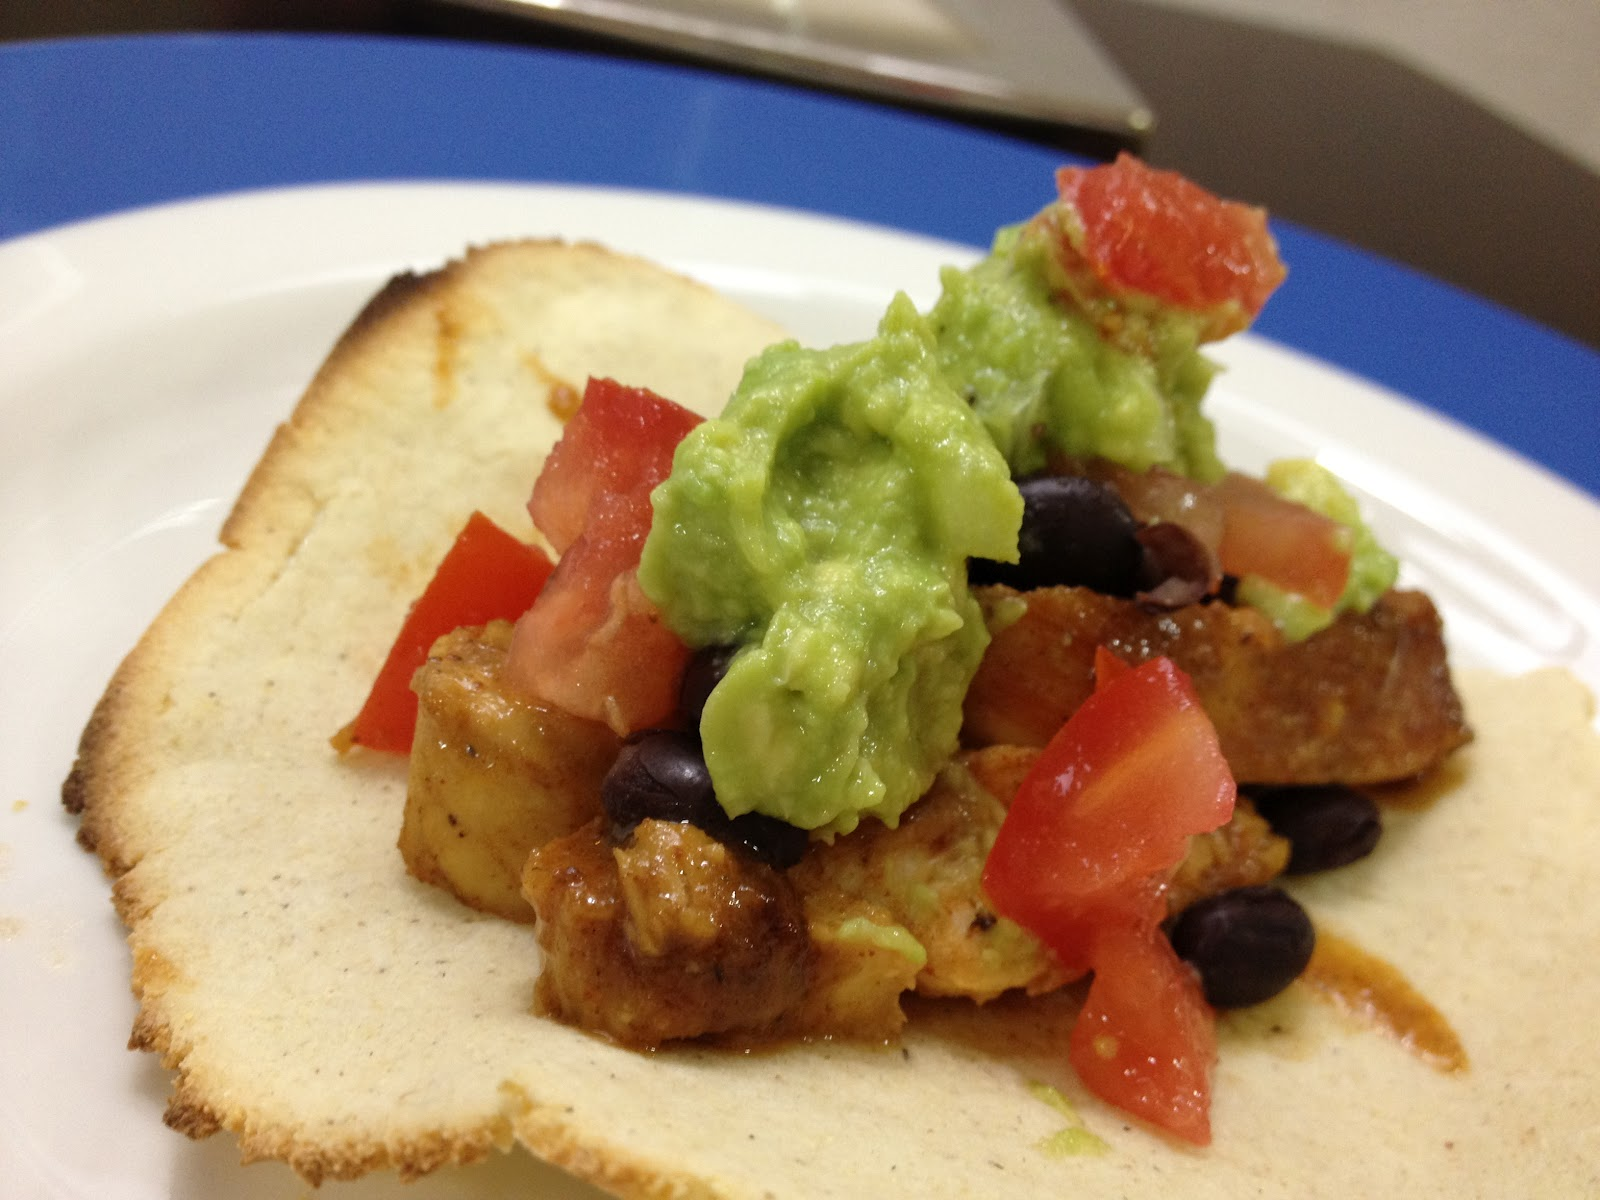 Tequila-Lime Chicken Tacos With Charred Limes Recipes — Dishmaps